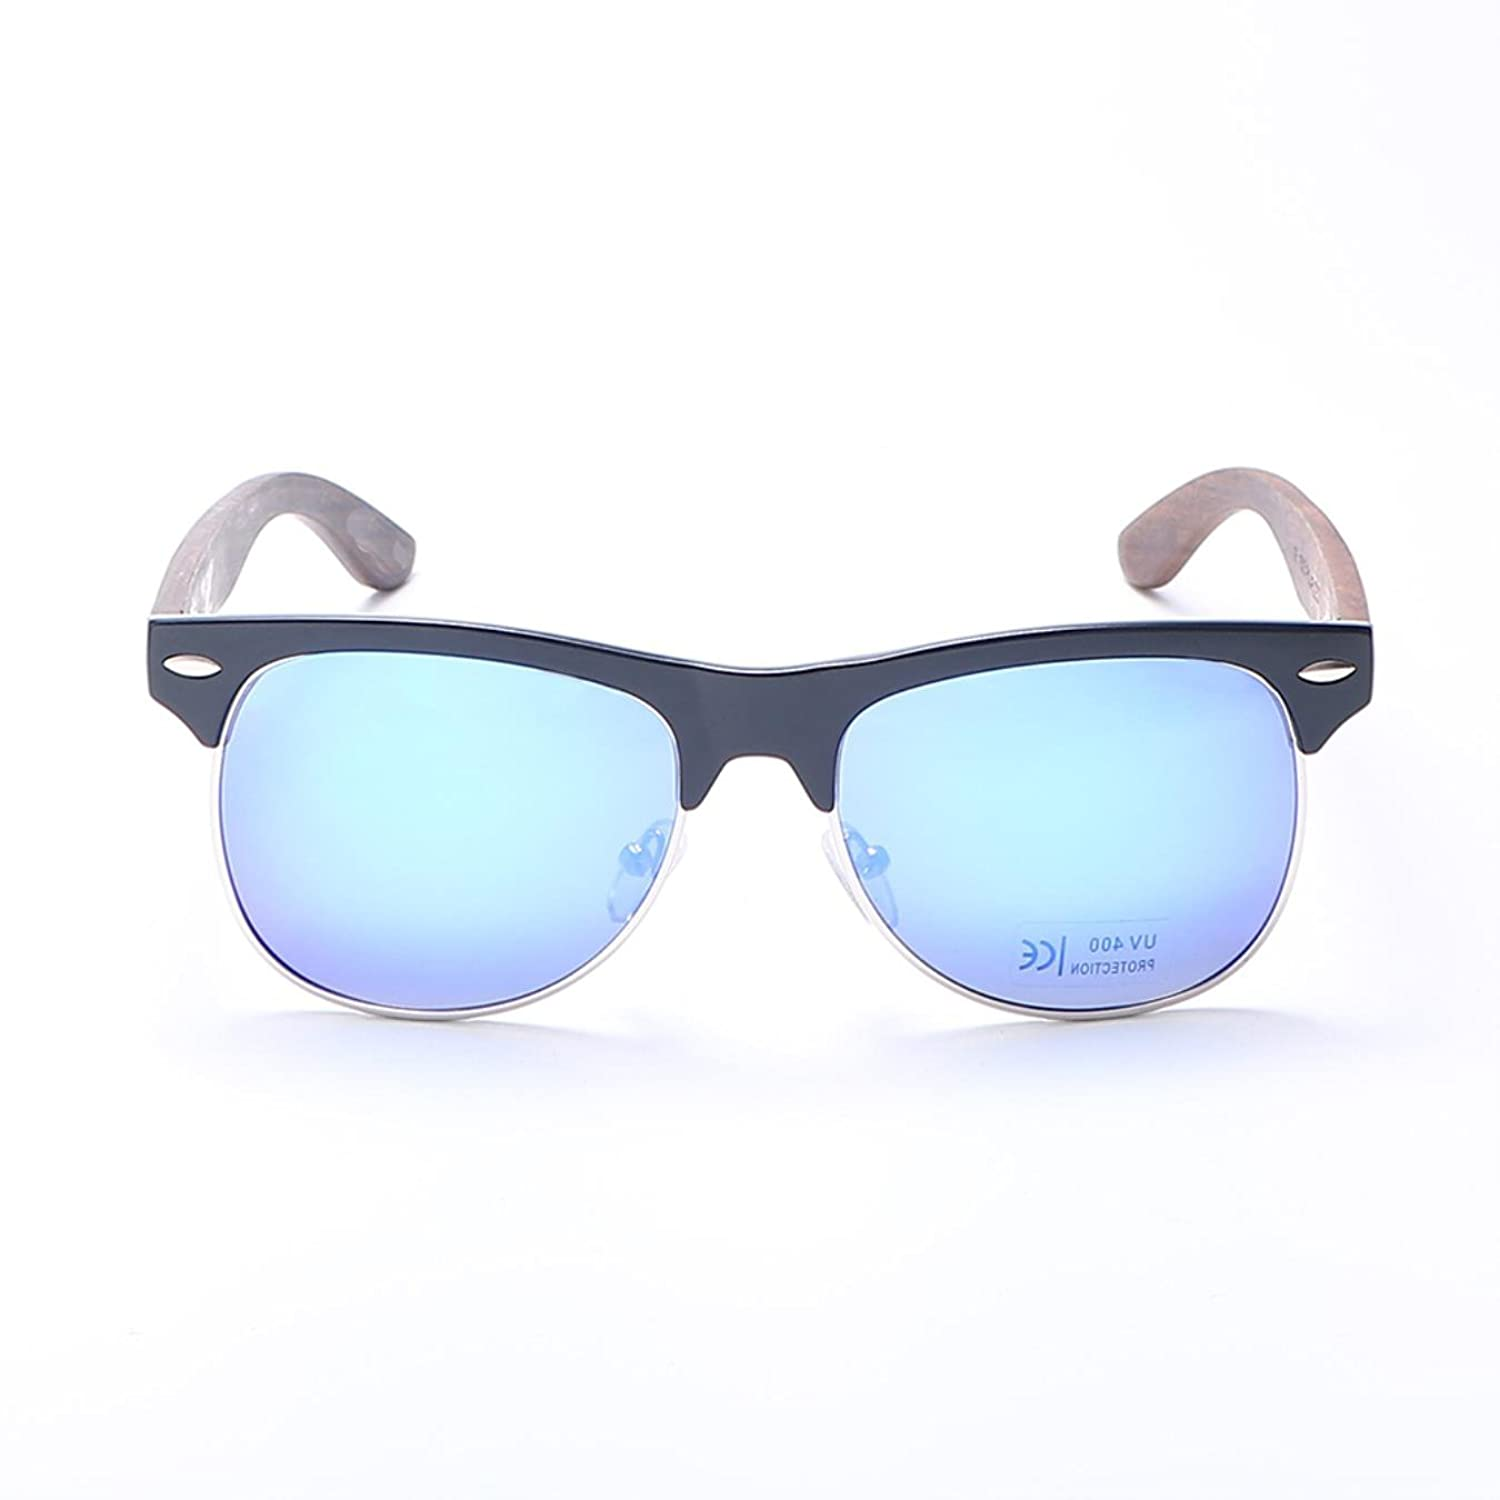 Sunglasses Men Polarized Quality Ladies Sunglases For Women Sun Glases Brand Design at Amazon Mens Clothing store: